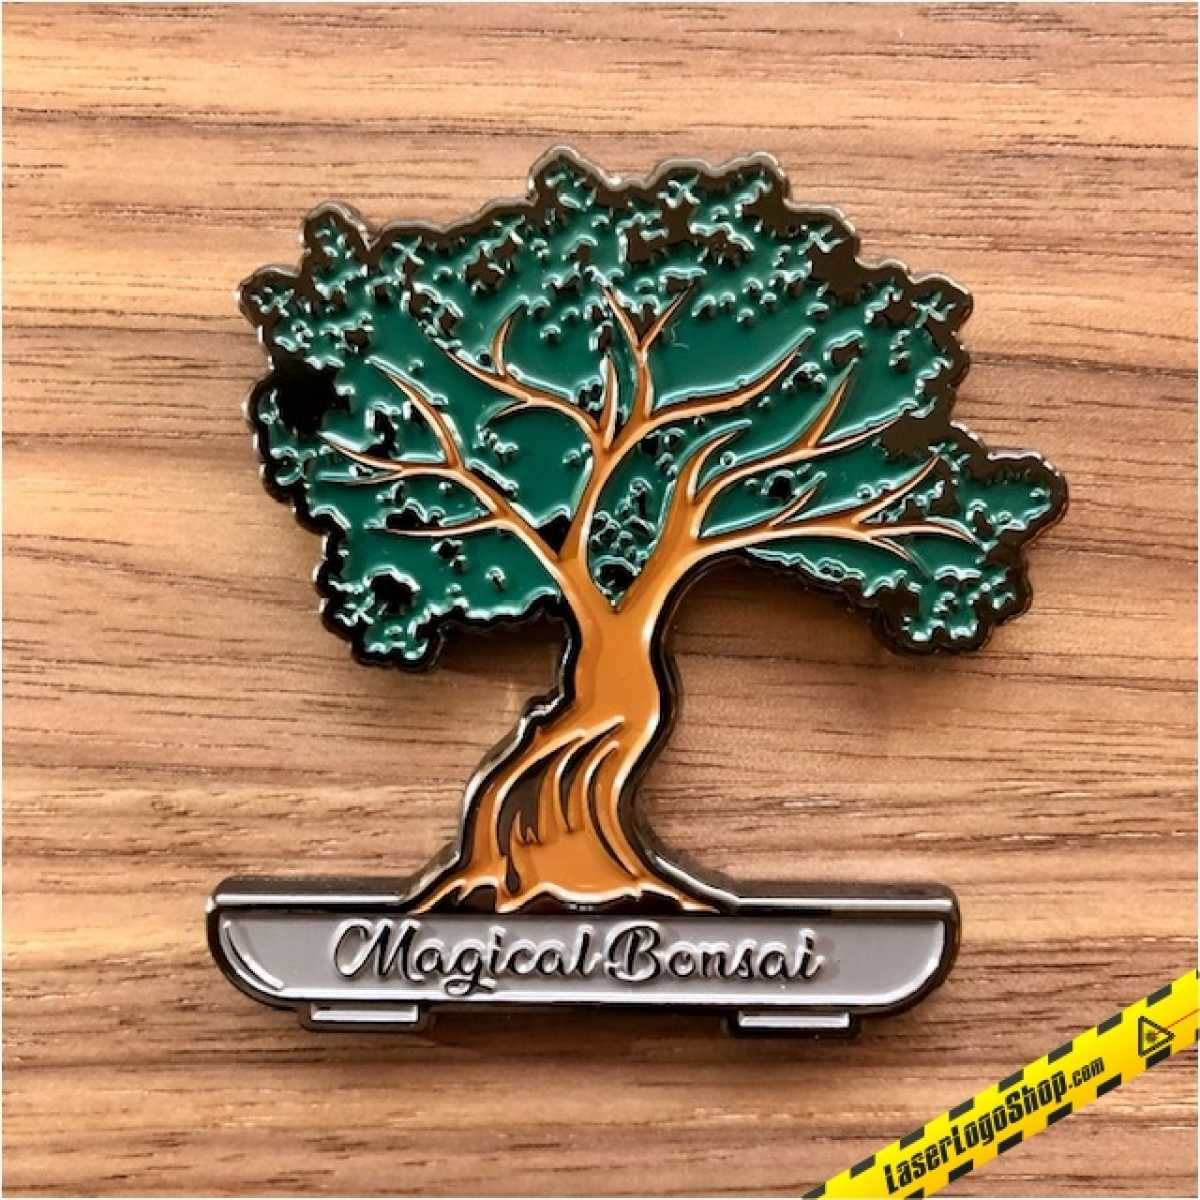 """Magical Bonsai"" Color Changing Geocoin - Regular Edition - Auflage 150 Stück"